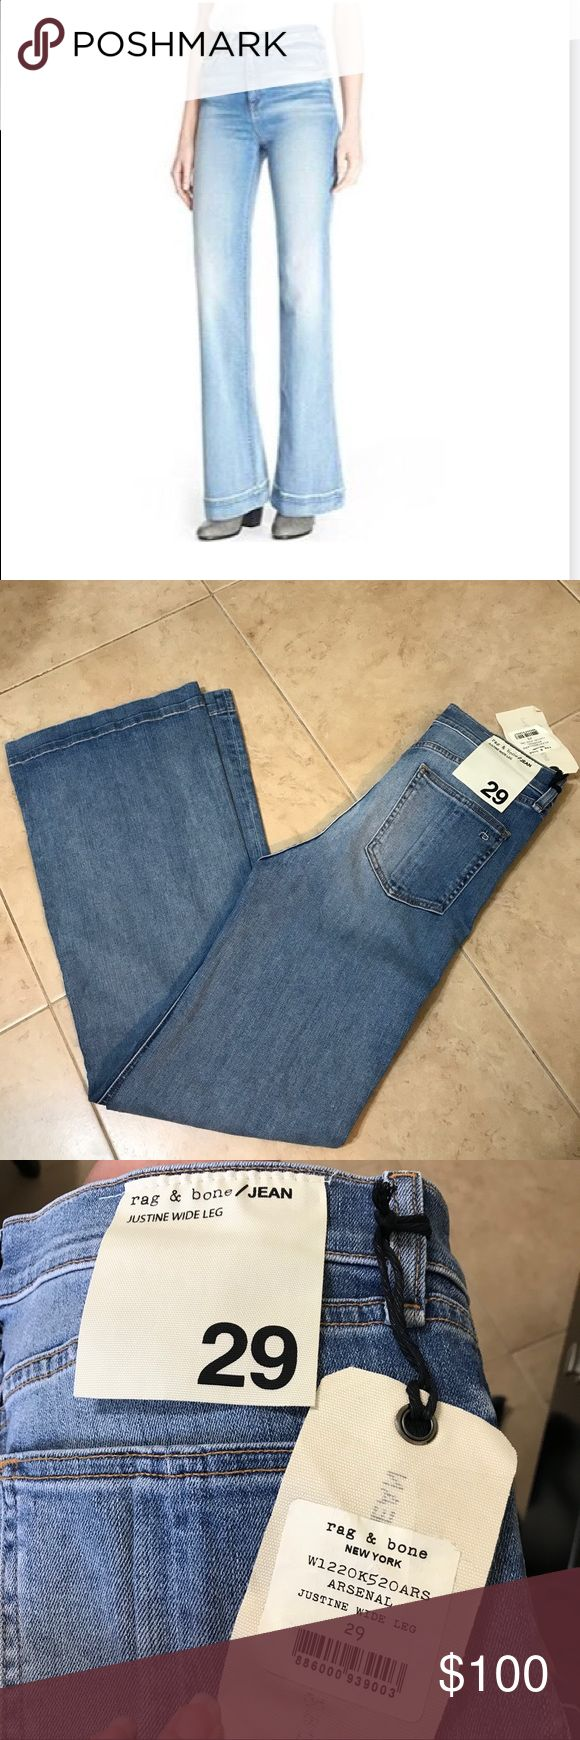 Rag and Bone Justine Wide Leg Jeans NWT Sz 29 Rag and Bone Jeans Size 29, New With Tags, Umworn, Wide Leg and High Waist, In Faded our Color Arsenal. See Pic and website for size chart for Justine Jeans currently only offered in a dark was for $250 rag & bone Jeans Flare & Wide Leg